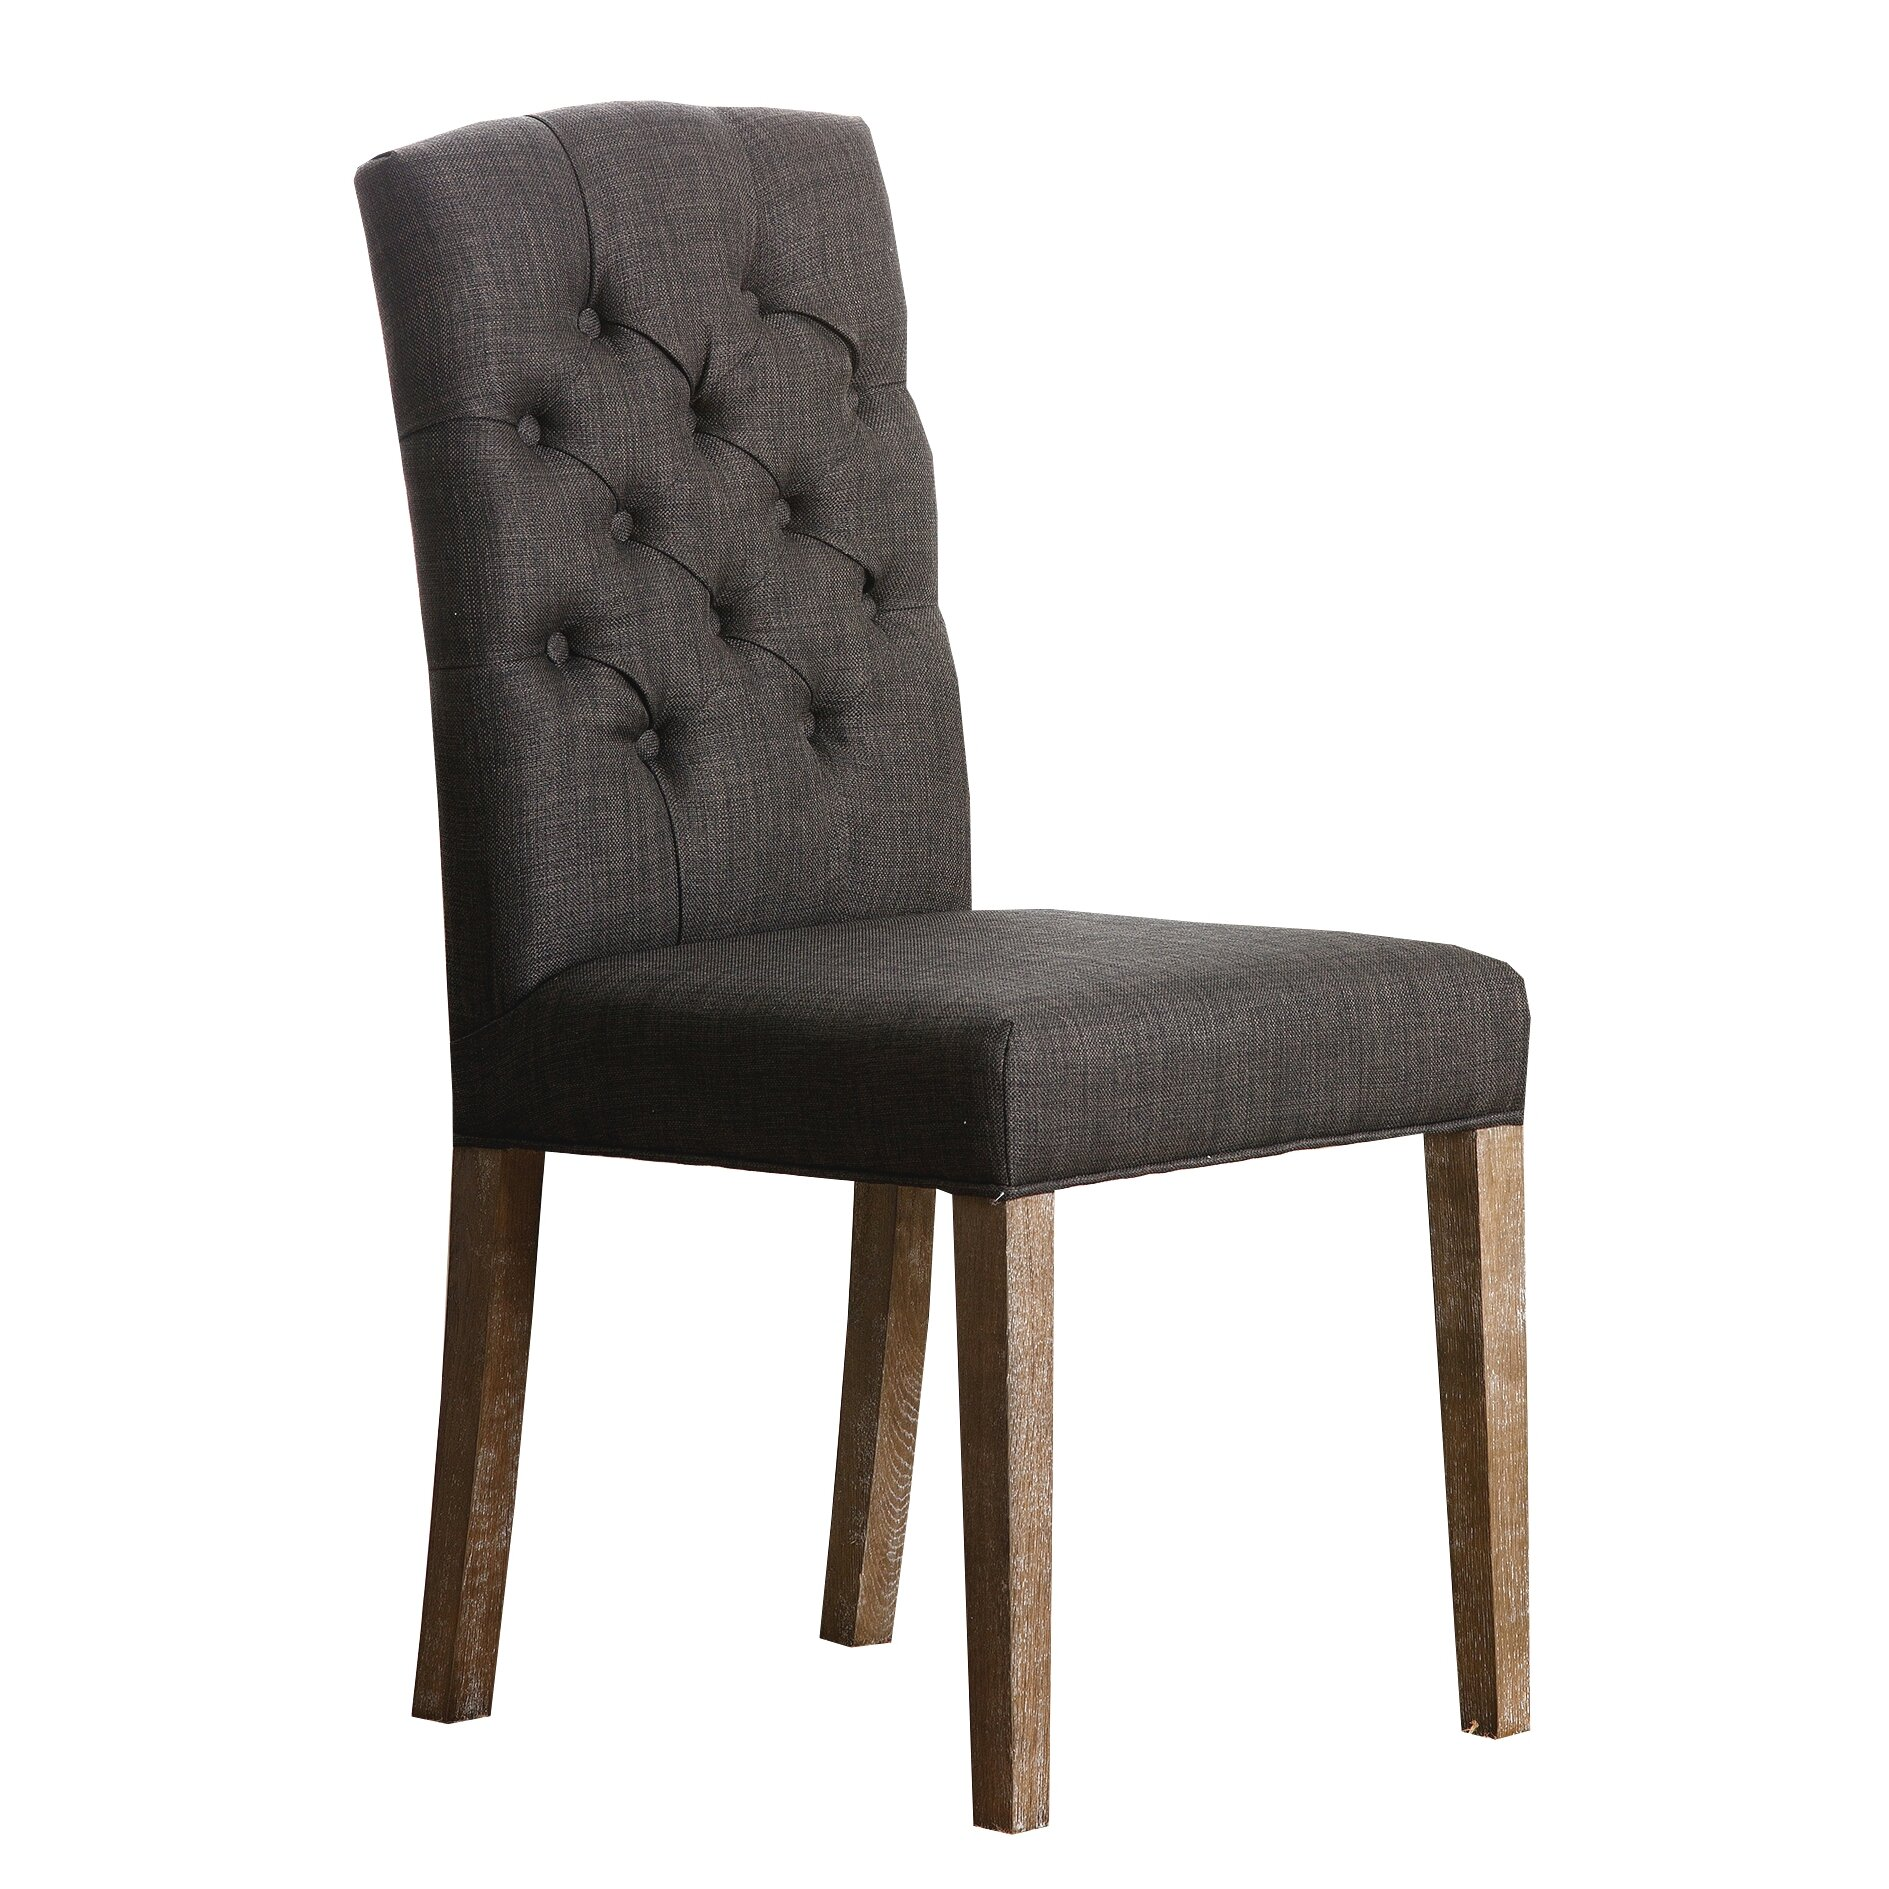 Abbyson Living Camille Linen Tufted Dining Chair In Wheat